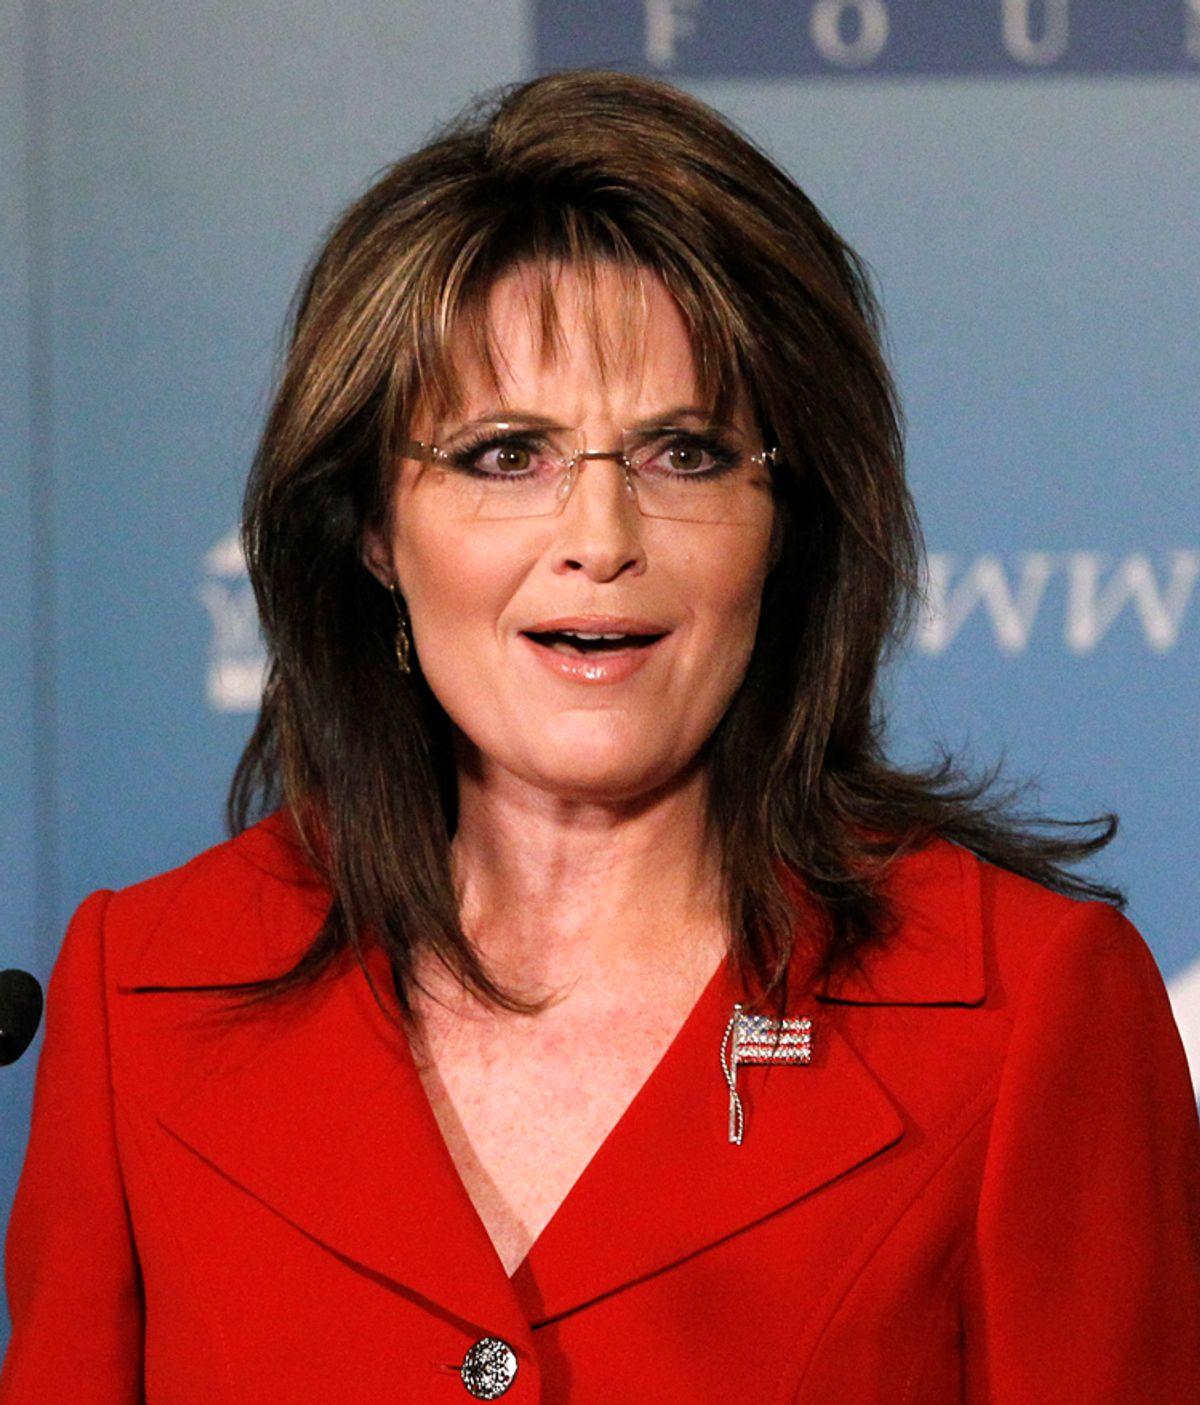 Former Alaska governor Sarah Palin delivers a keynote speech at the Reagan 100 opening banquet at Reagan Ranch Center in Santa Barbara, California February 4, 2011. The event celebrates the 100th anniversary of former U.S. President Ronald Reagan's birthday.    REUTERS/Mario Anzuoni (UNITED STATES - Tags: POLITICS PROFILE)  (© Mario Anzuoni / Reuters)